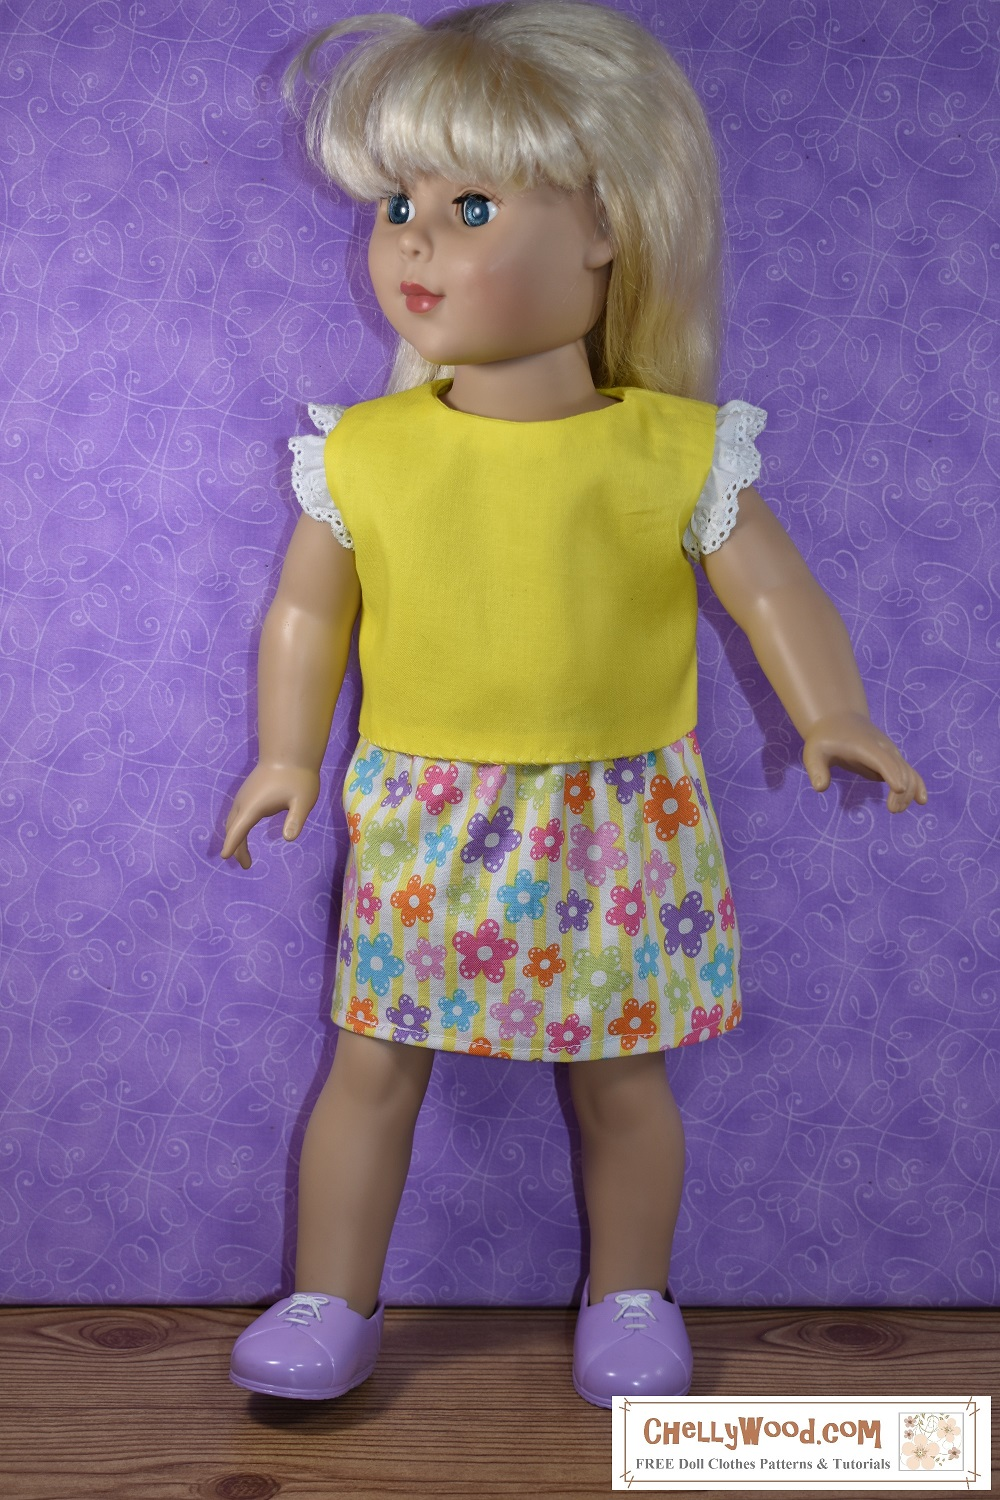 """Here we see an 18"""" doll (similar in body style to the American Girl doll) modeling a pretty yellow top with eyelet lace trim around the sleeves and a multicolored skirt dotted with big colorful daisies in the fabric's printed design. The skirt is an elastic-waist easy-to-sew skirt, ideal for beginners and children learning how to sew for the first time. Click on the link in the caption, and it will take you to a page where you can download and print all the free printable sewing patterns for making these doll clothes, along with links to tutorial videos that show you how to make this outfit."""